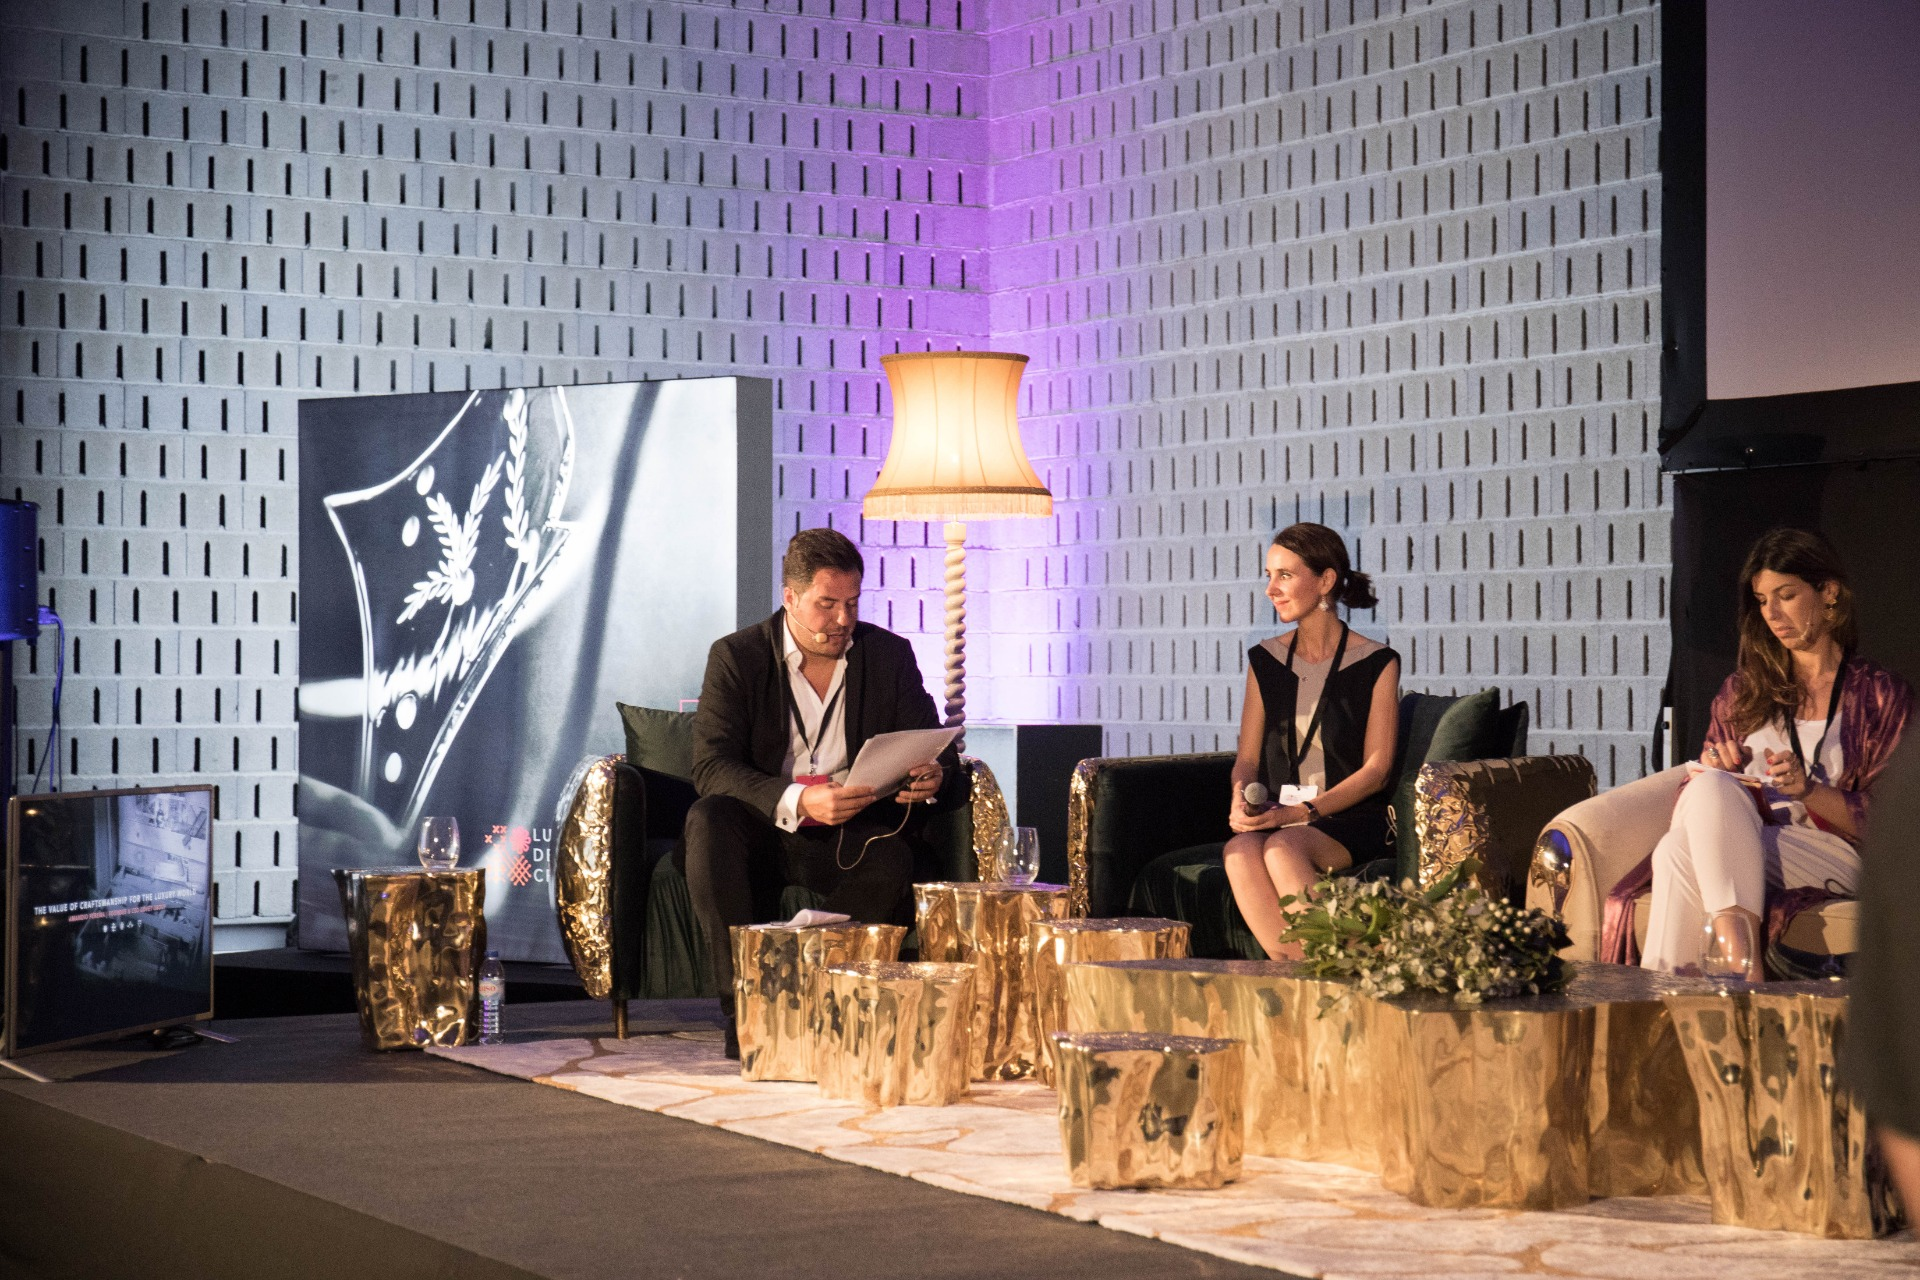 Celebrating Craftsmanship The Luxury Design+Craftsmanship Summit 2019 (4) luxury design Luxury Design+Craftsmanship Summit 2019: Celebrating Arts & Crafts in Porto Celebrating Craftsmanship The Luxury DesignCraftsmanship Summit 2019 4